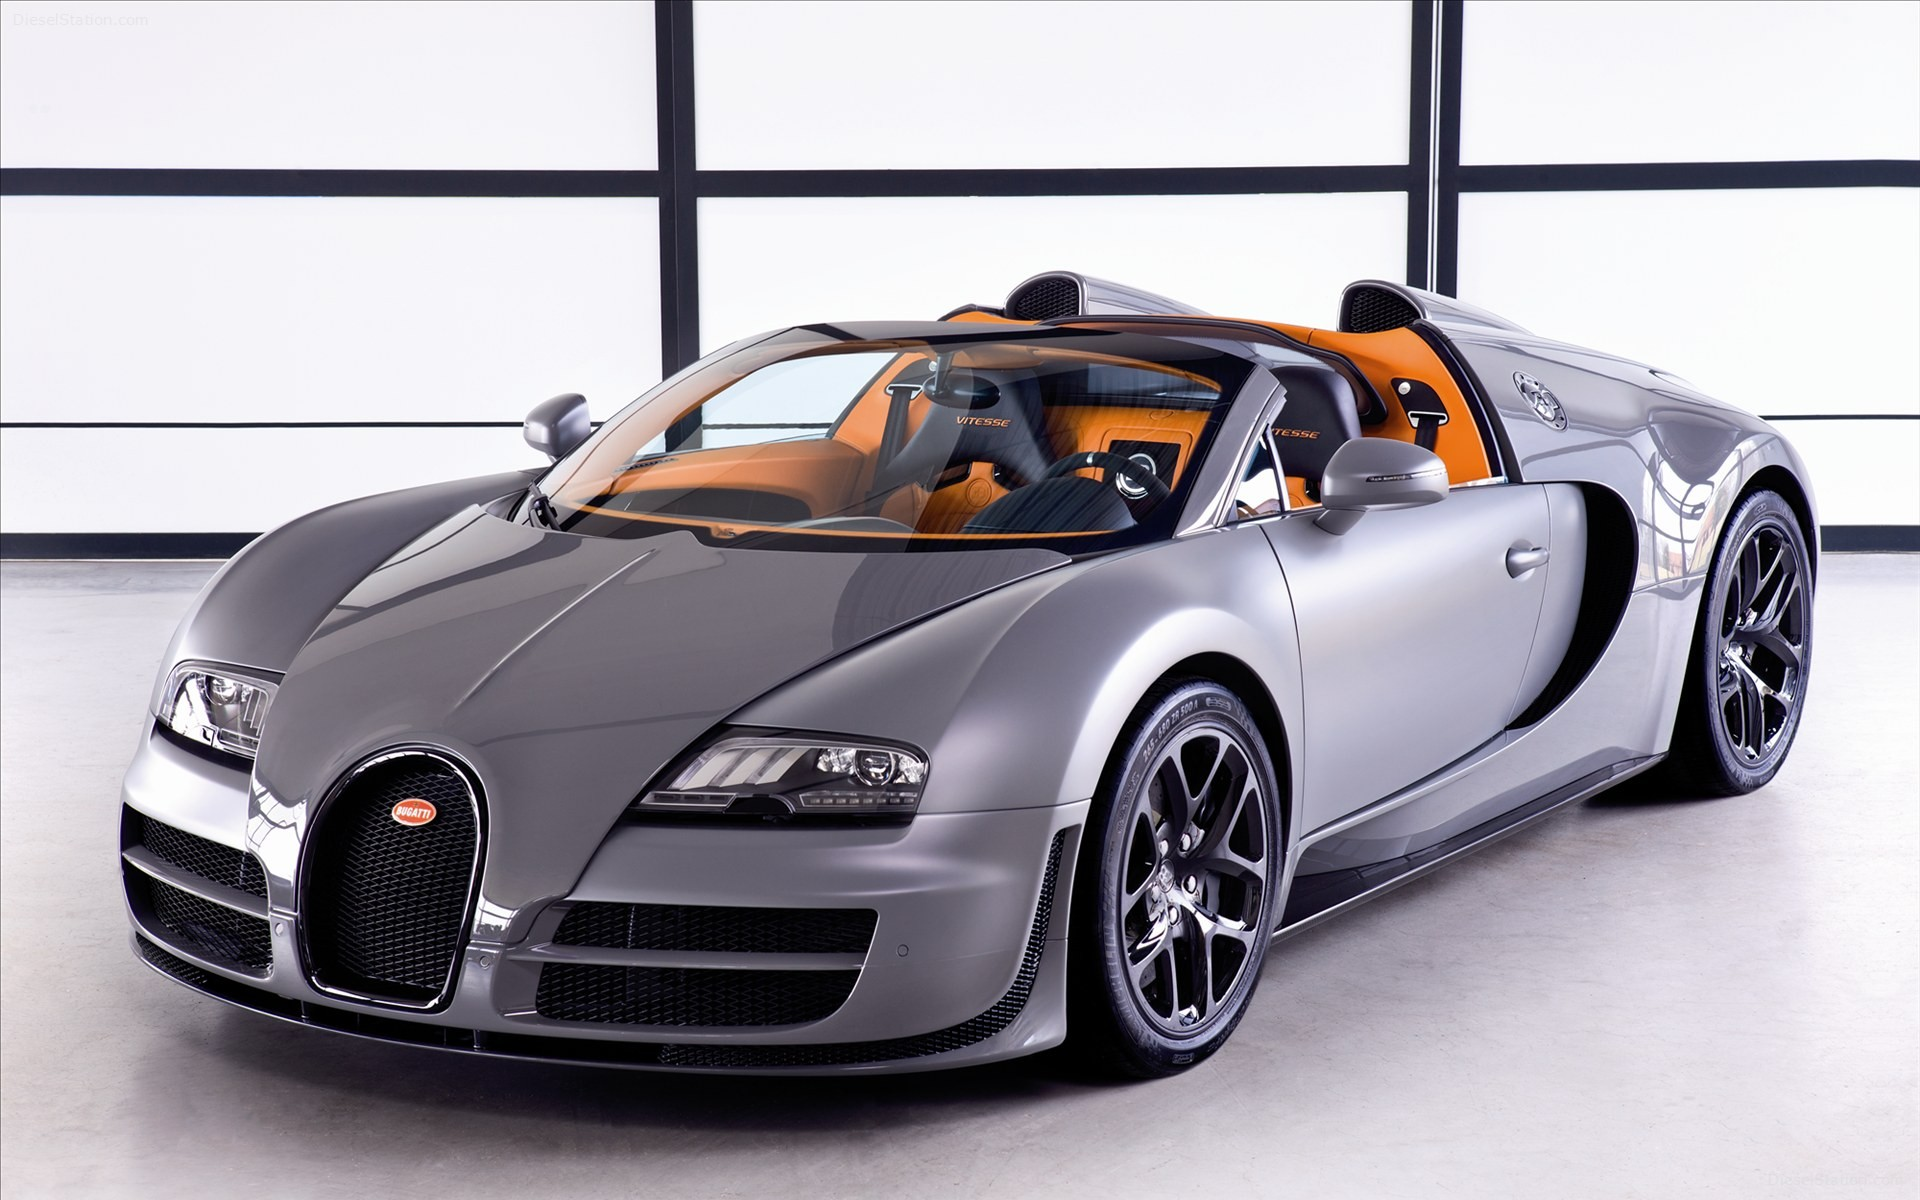 bugatti veyron grand sport vitesse 2012 wallpaper hd car. Black Bedroom Furniture Sets. Home Design Ideas